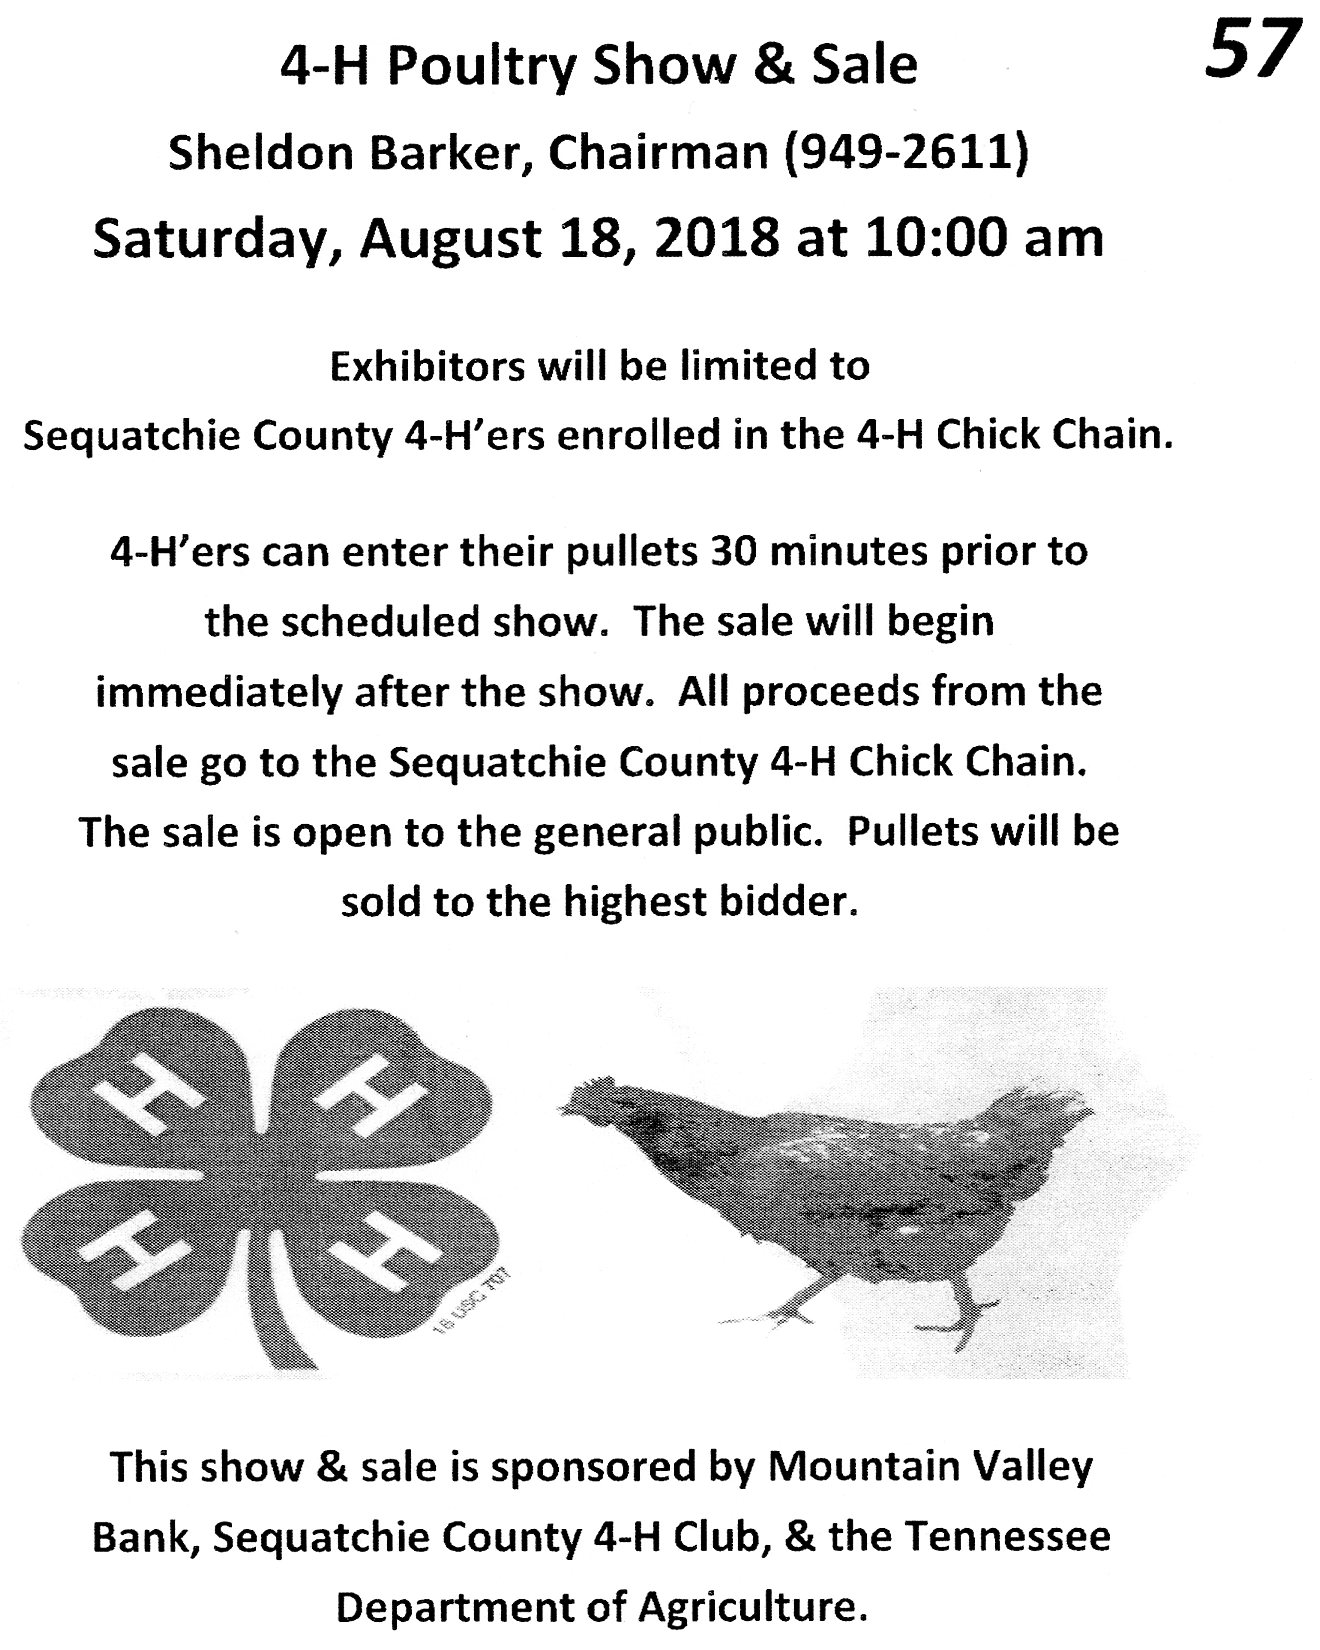 4h chicken show-sale